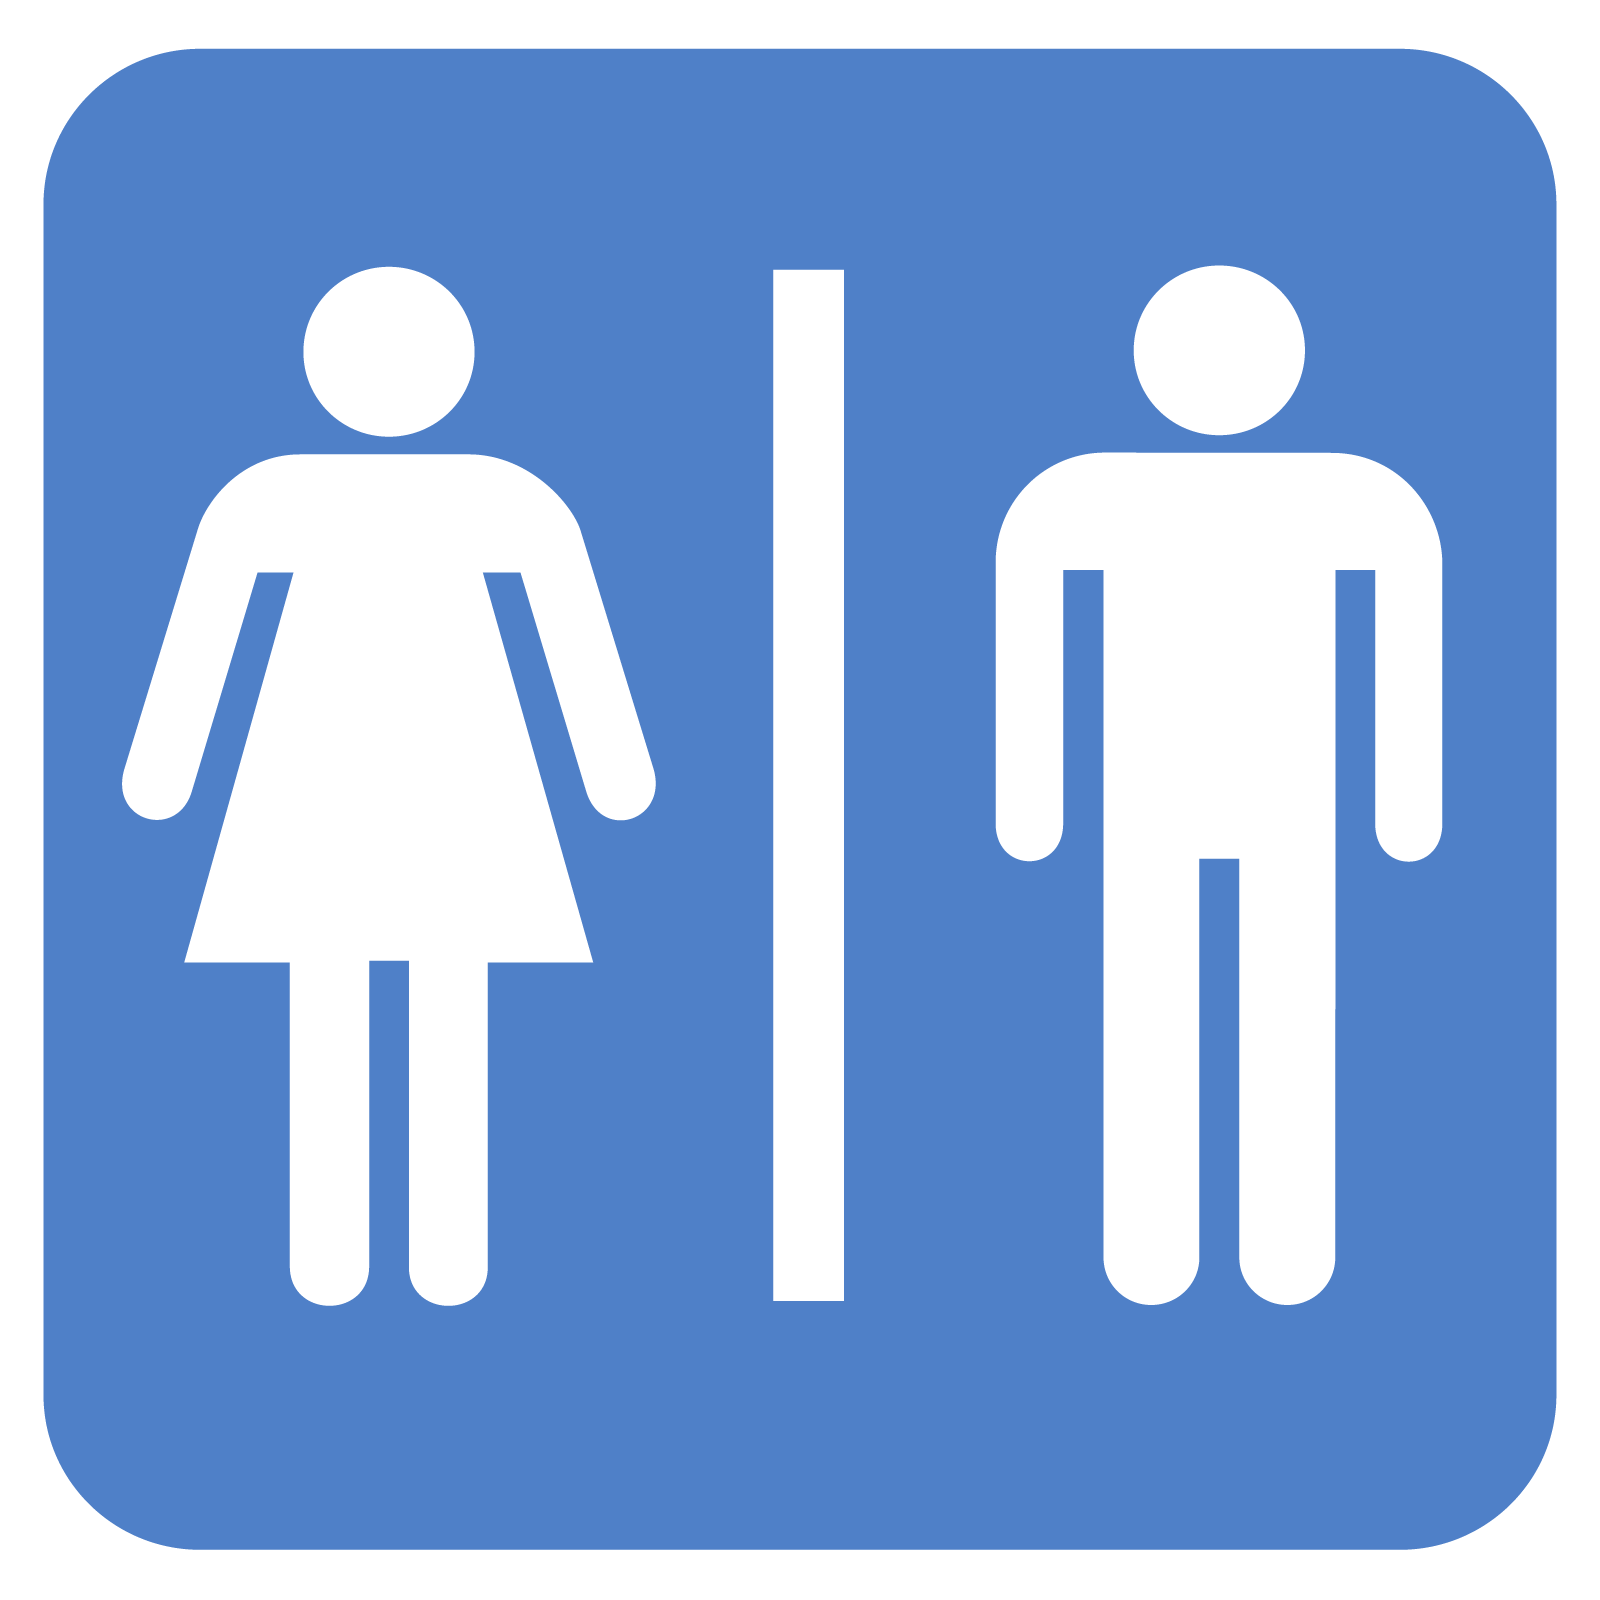 File:Bathroom-gender-sign.png - Wikimedia Commons